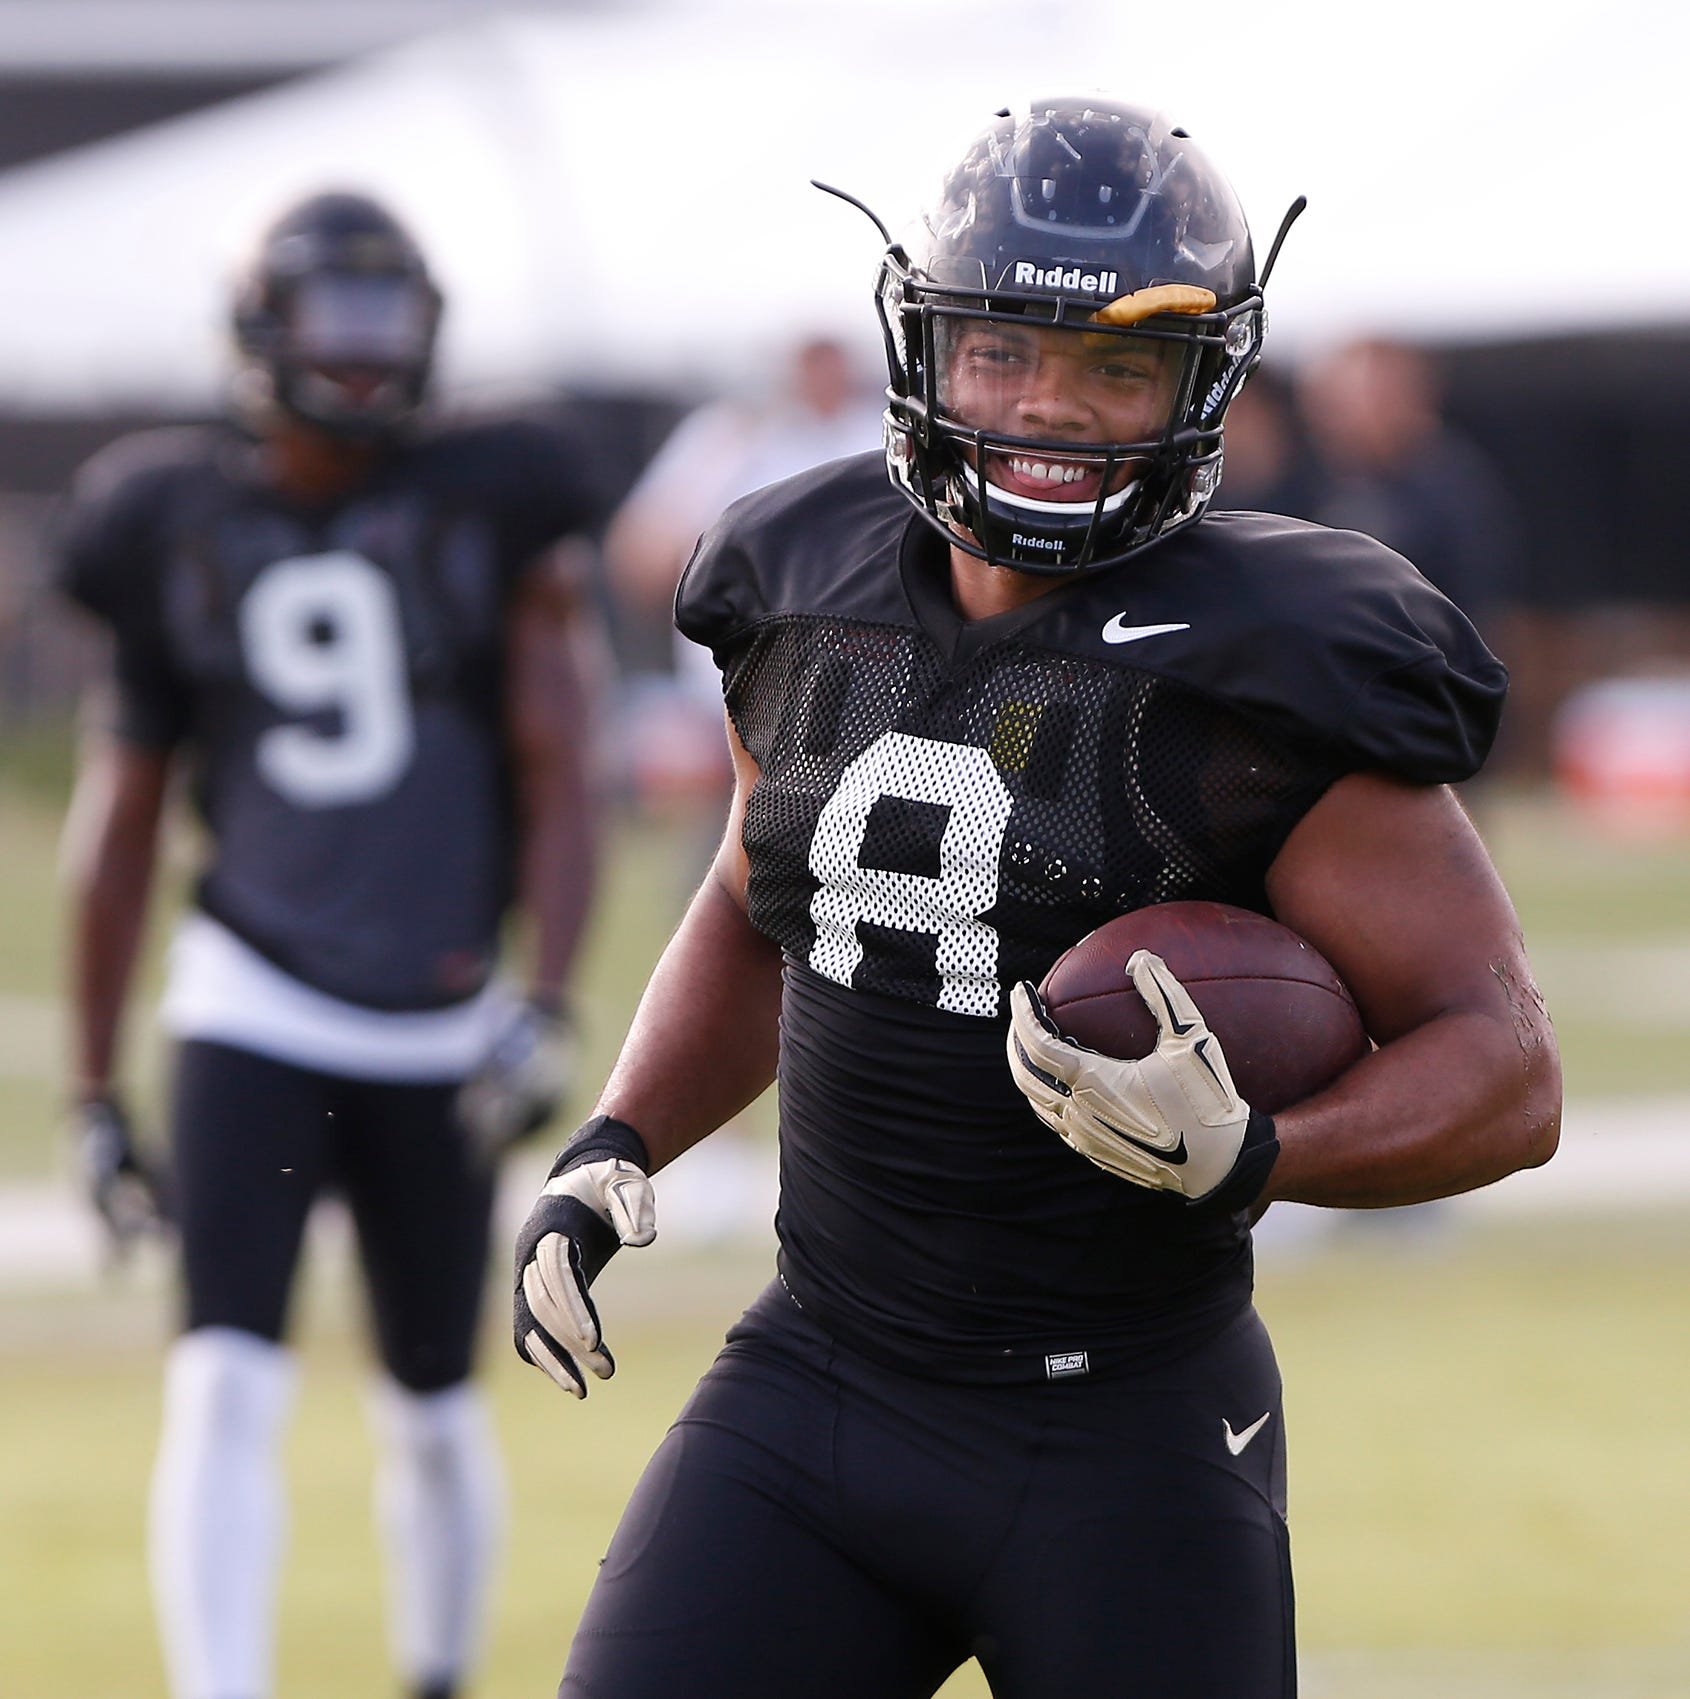 Purdue running back Markell Jones sheds weight, ready for senior season